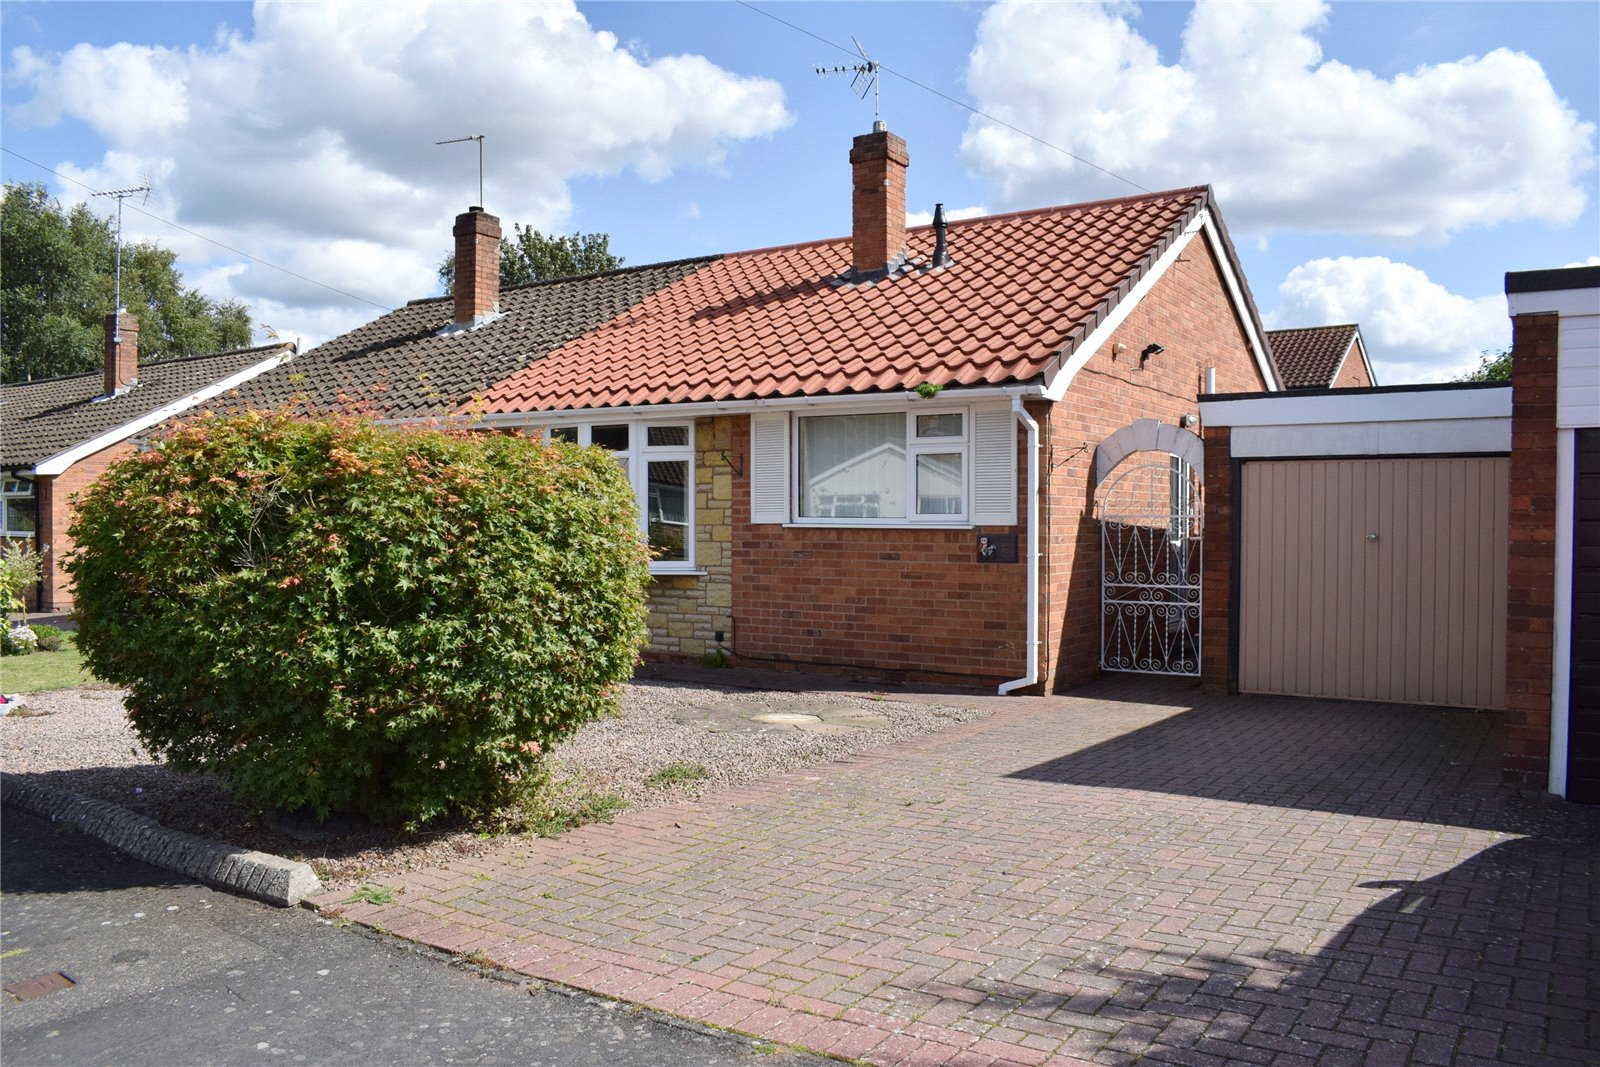 36 Snowdon Close, Franche, Kidderminster, Worcestershire, DY11